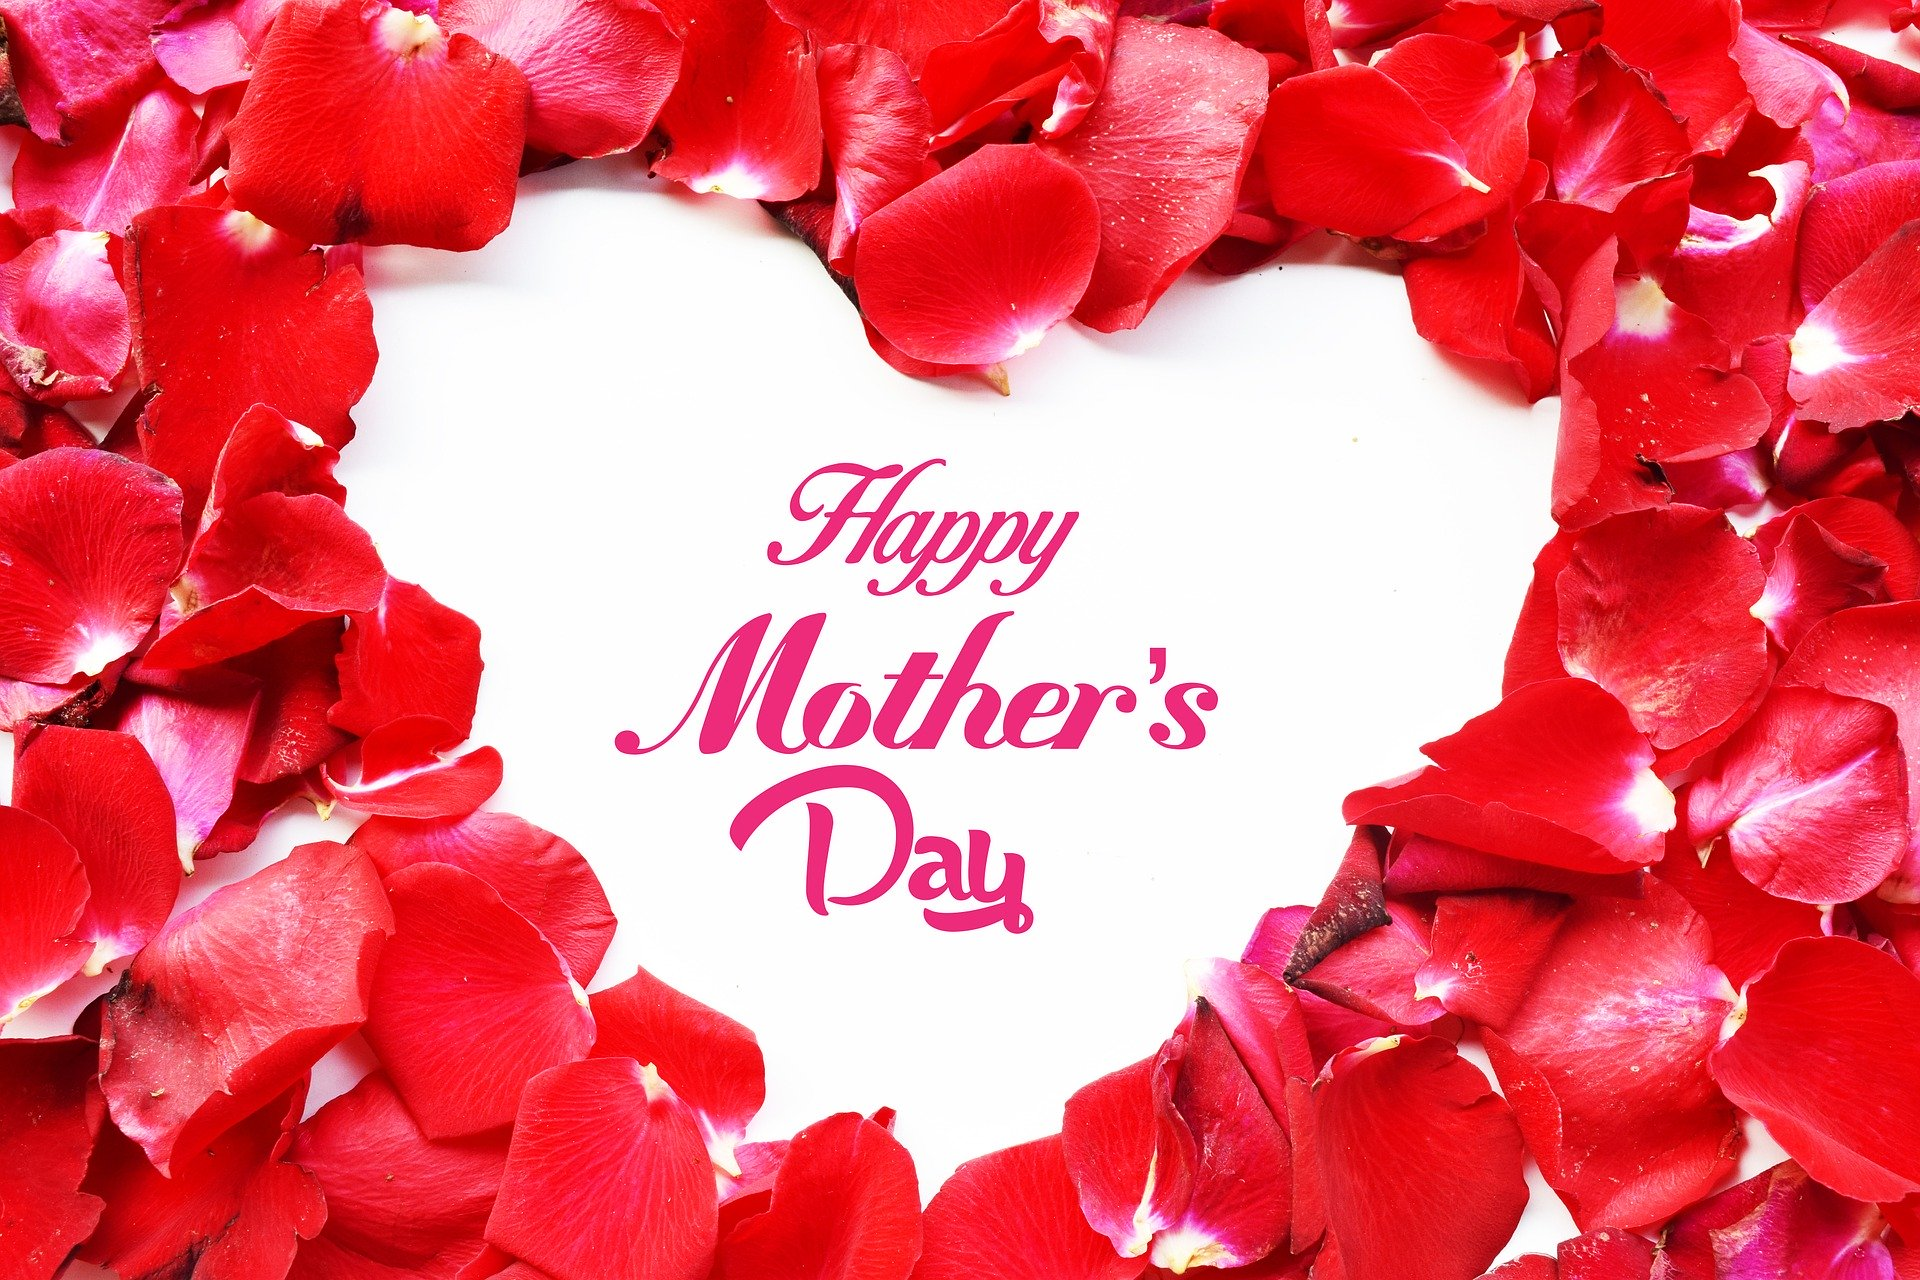 Happy Mother's Day text framed by red rose petals in an heart shape